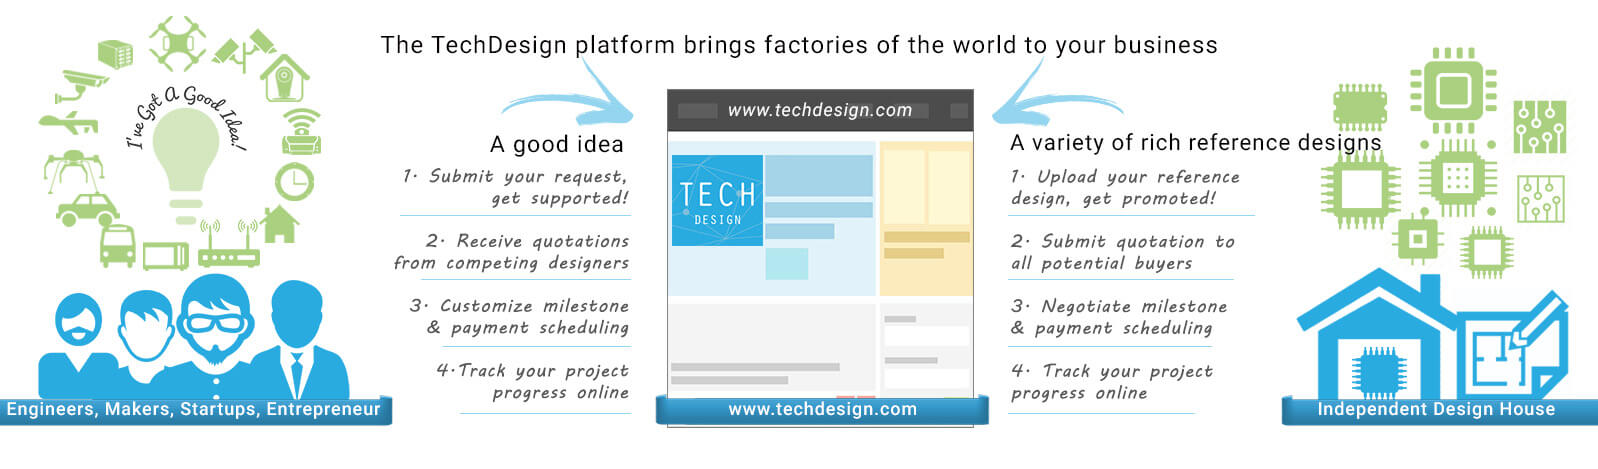 The TechDesign platform brings factories of the world to your business. Submit your good idea, a variety of rich reference designs will be provided.